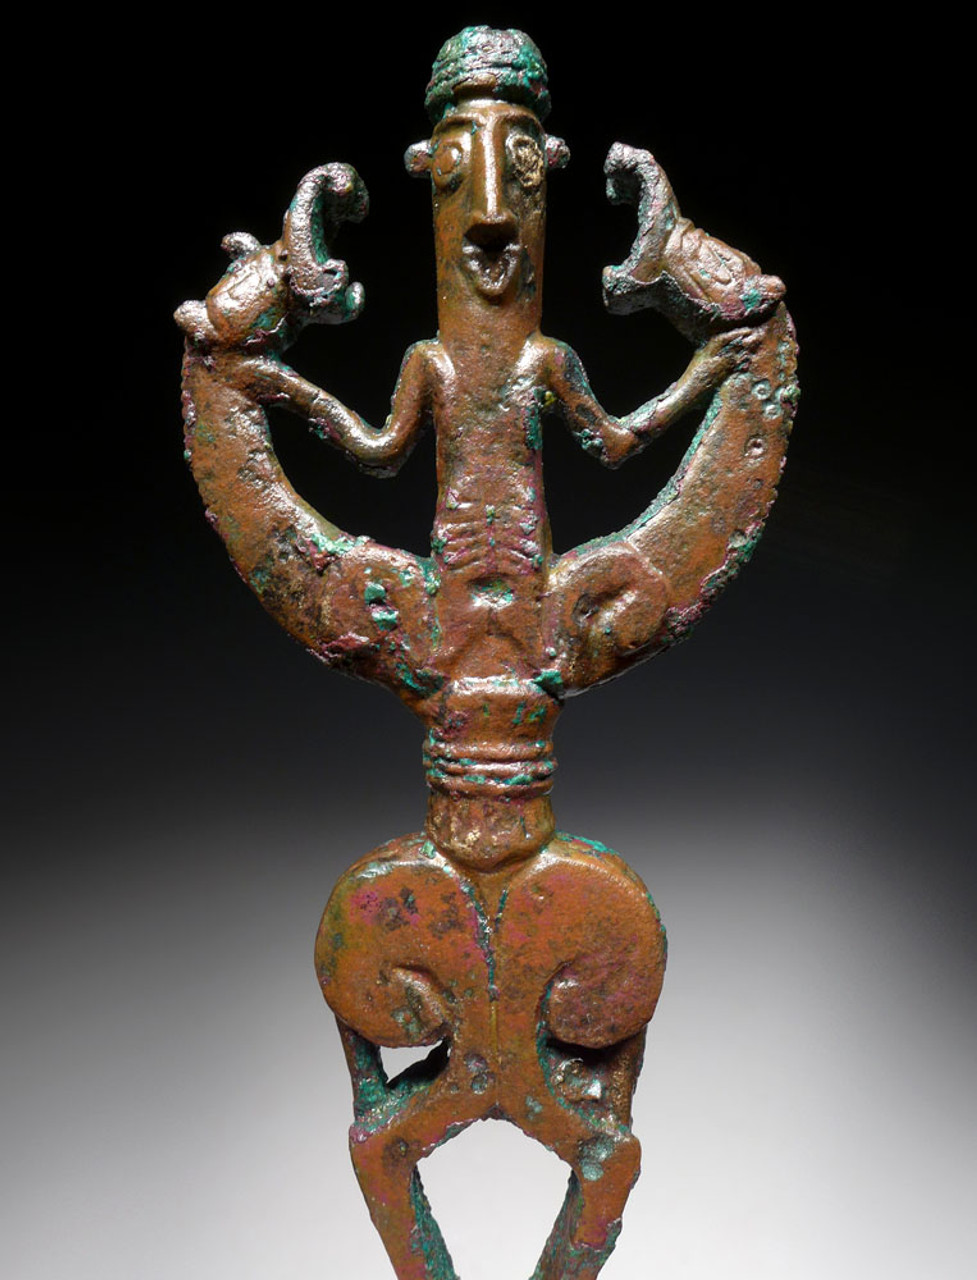 LARGE BRONZE ANCIENT ART MASTER-OF-ANIMALS IDOL FINIAL FIGURE FROM NEAR EASTERN LURISTAN  *LUR183